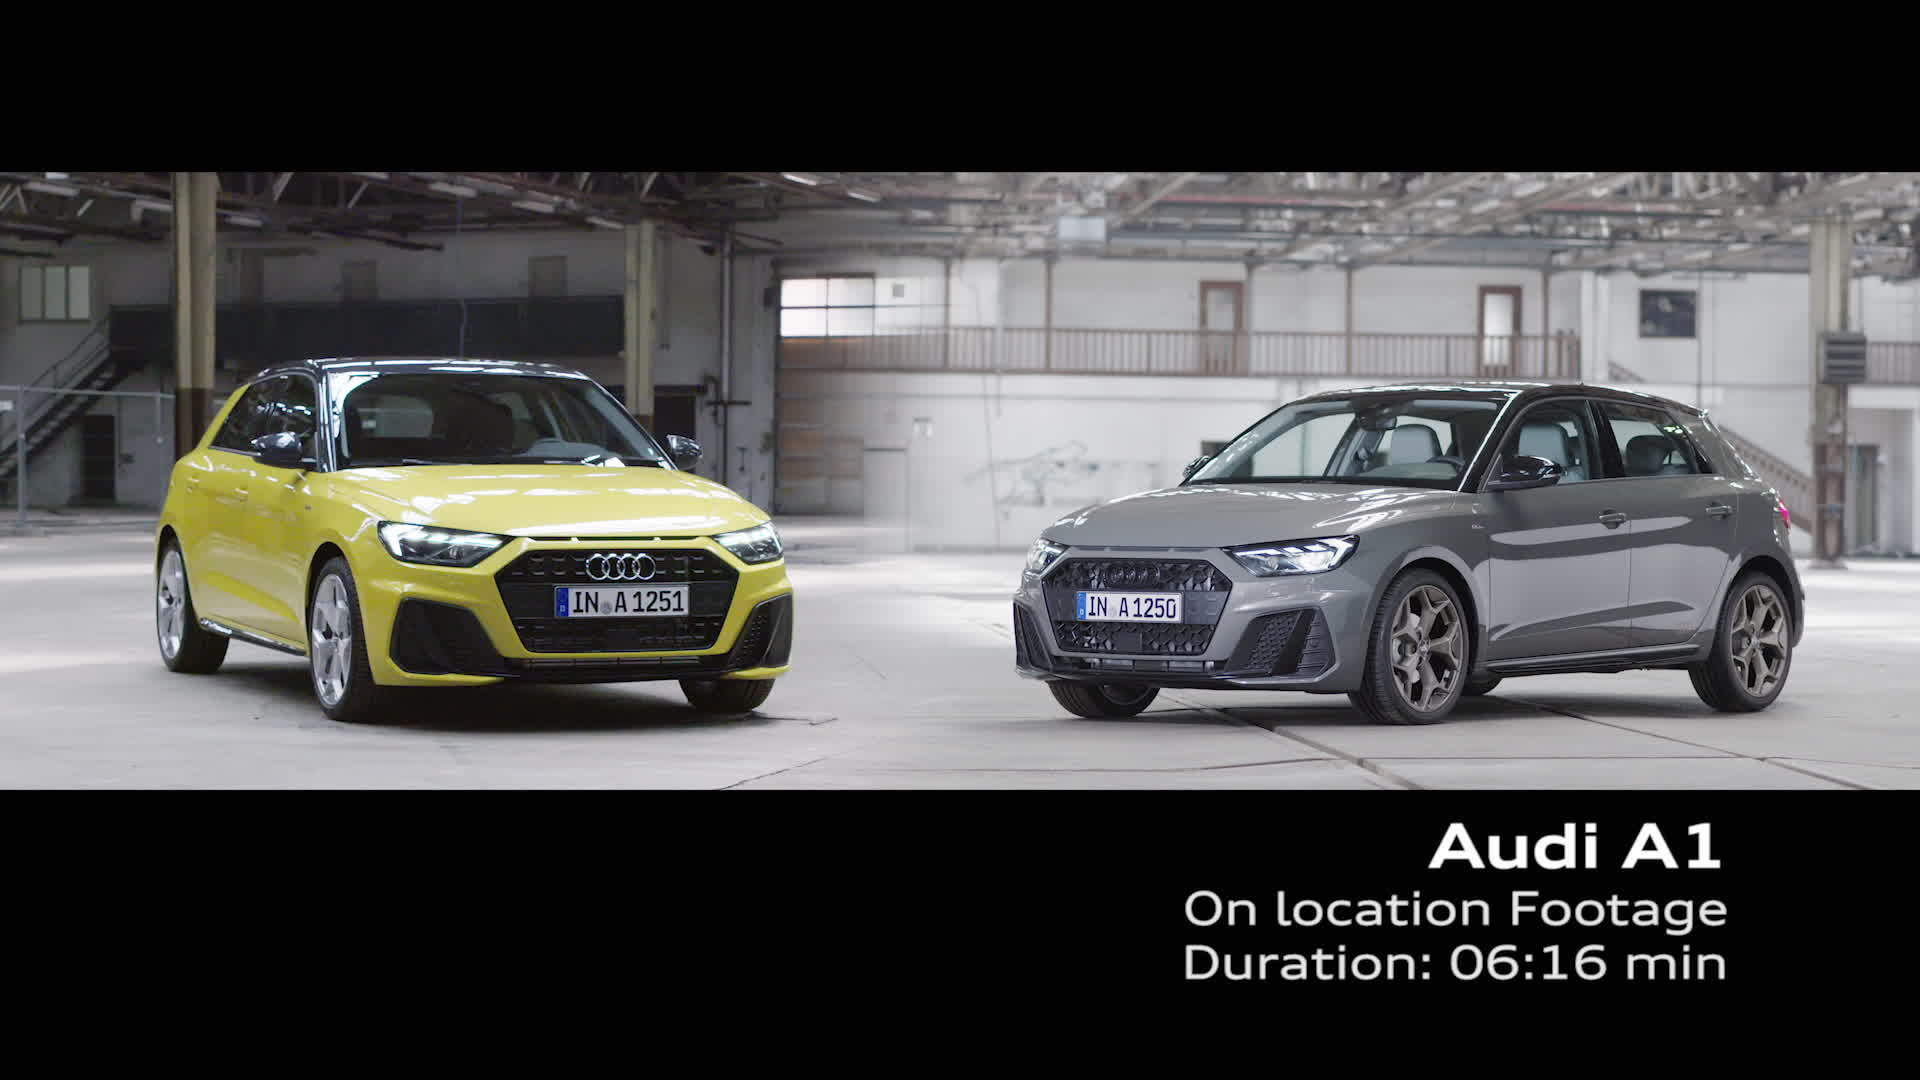 Audi A1 Sportback On Location Footage Video Audi Mediatv